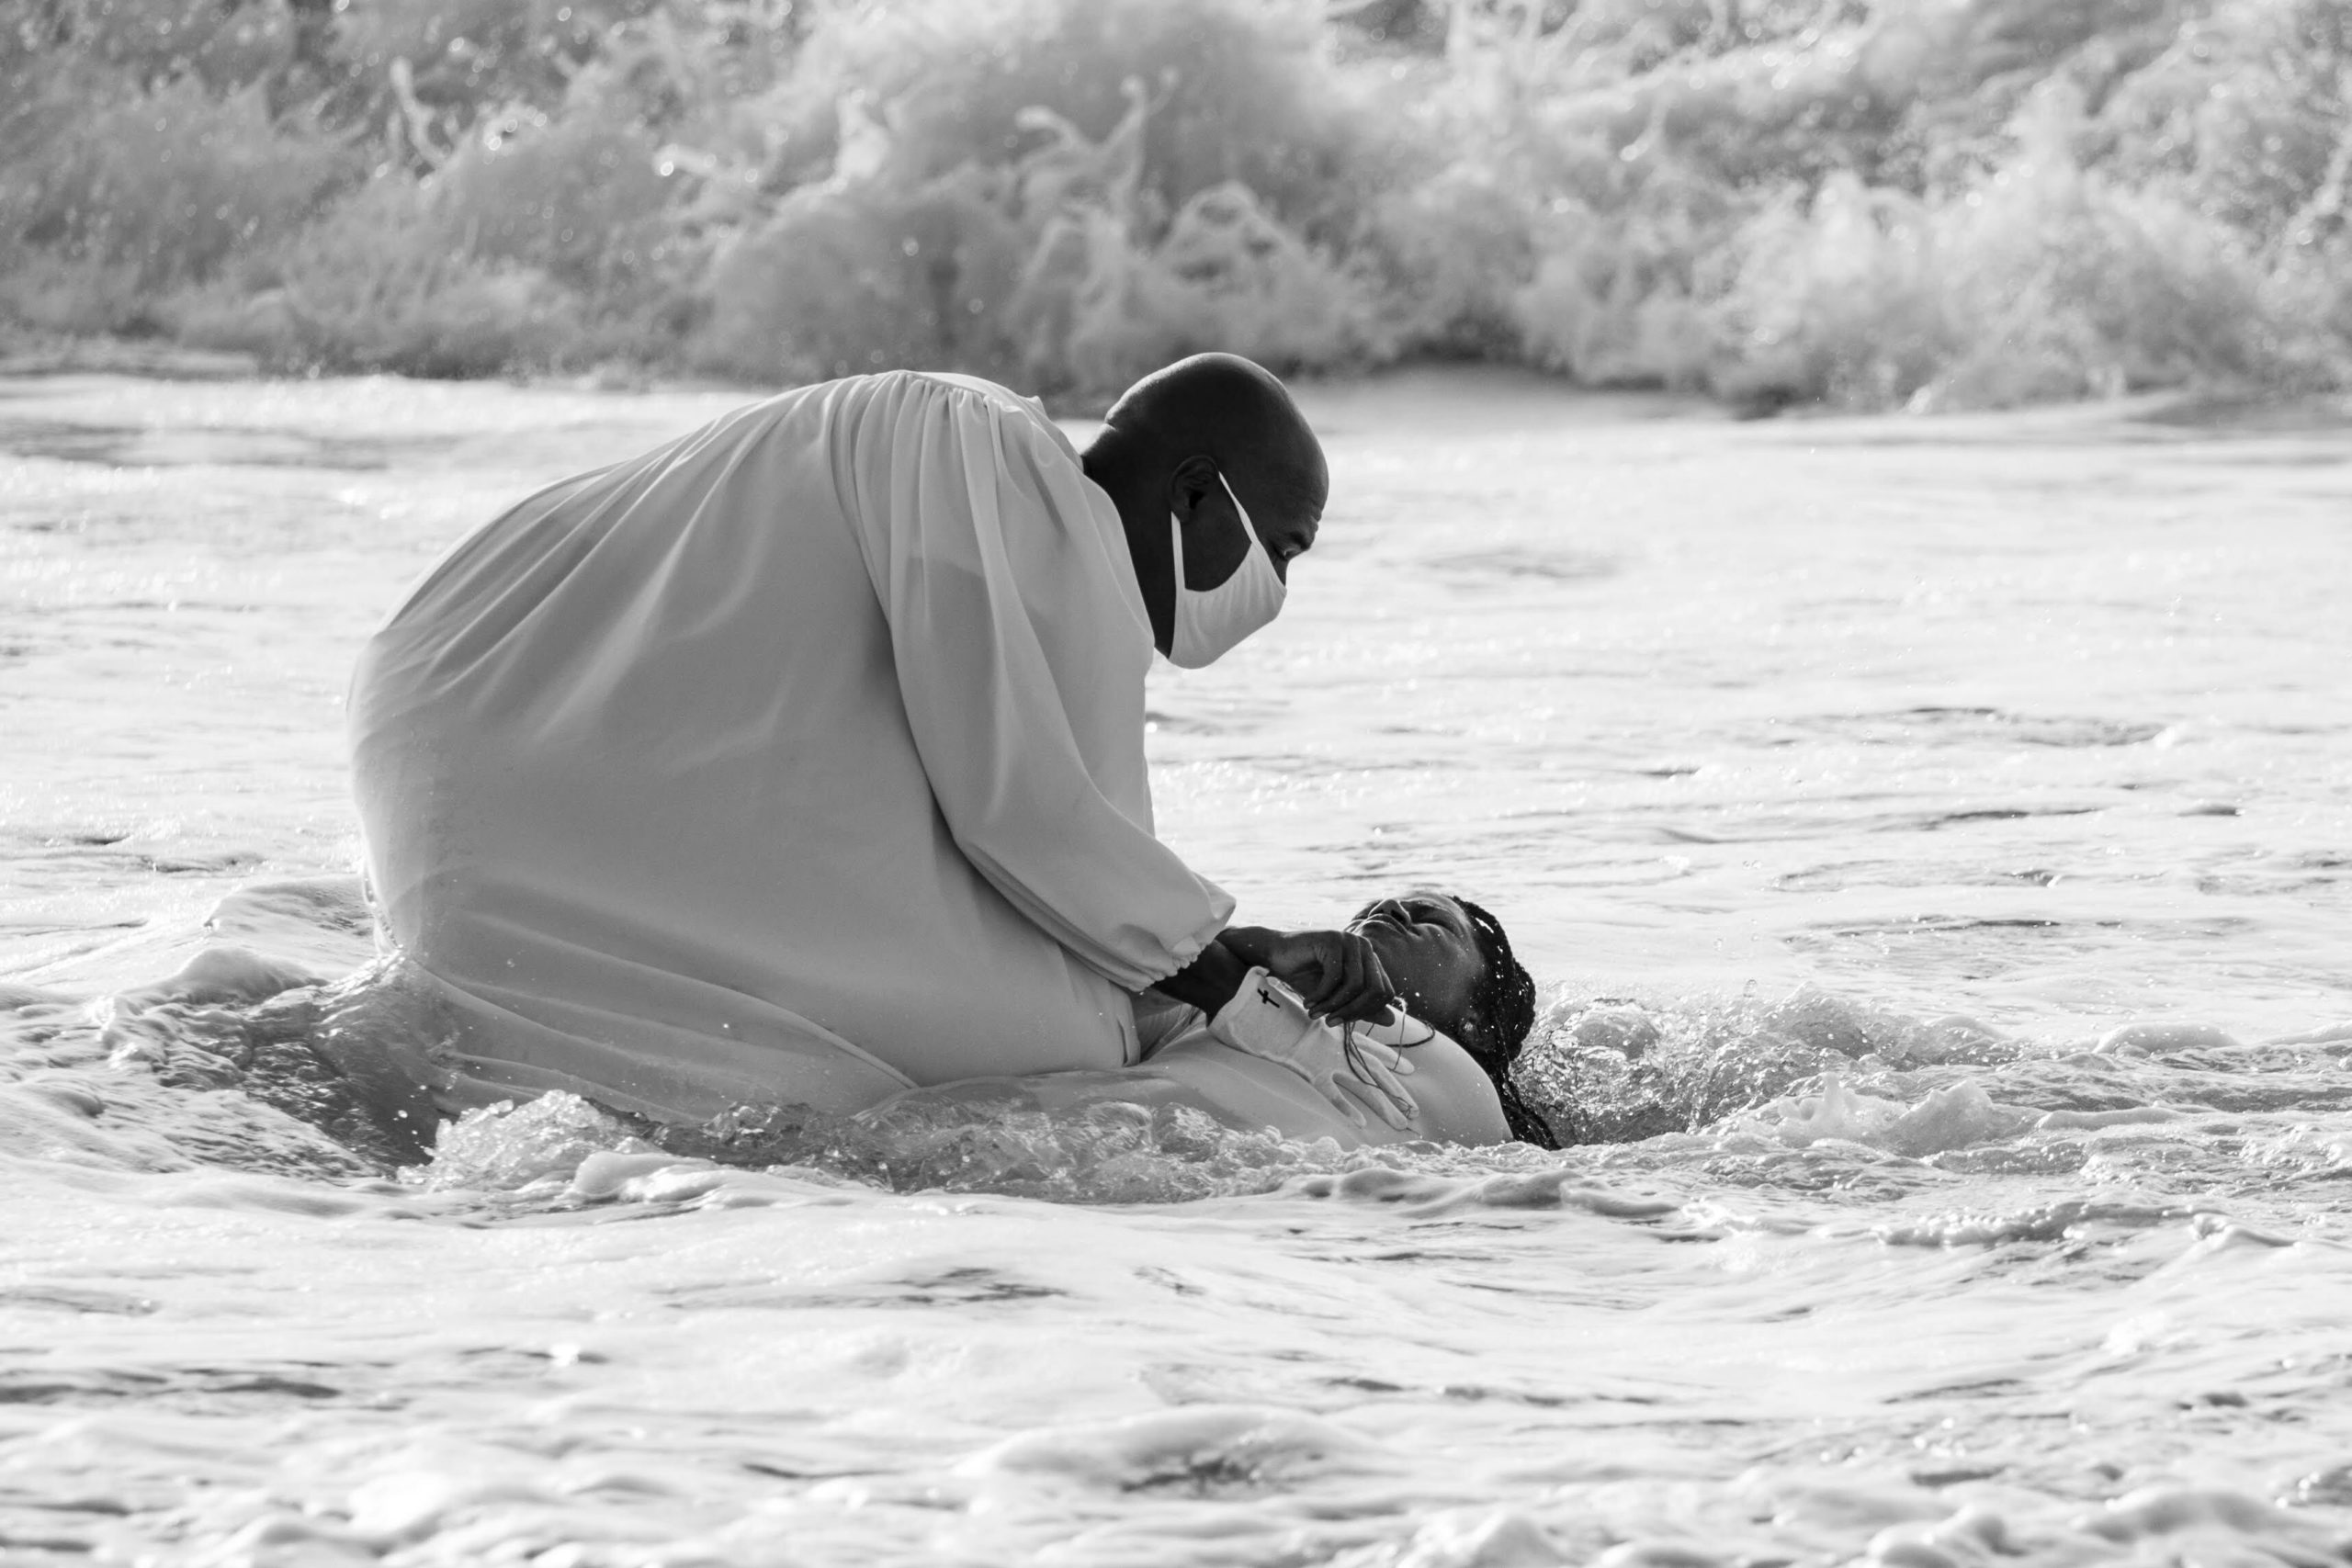 The Rev. Tisha Williams and her husband, Deacon Lawrence Williams, baptize Shakeva Brown and Delana Miller on Saturday in Bridgehampton. Both women have waited six months to be baptized as a result of the COVID-19 virus pandemic.